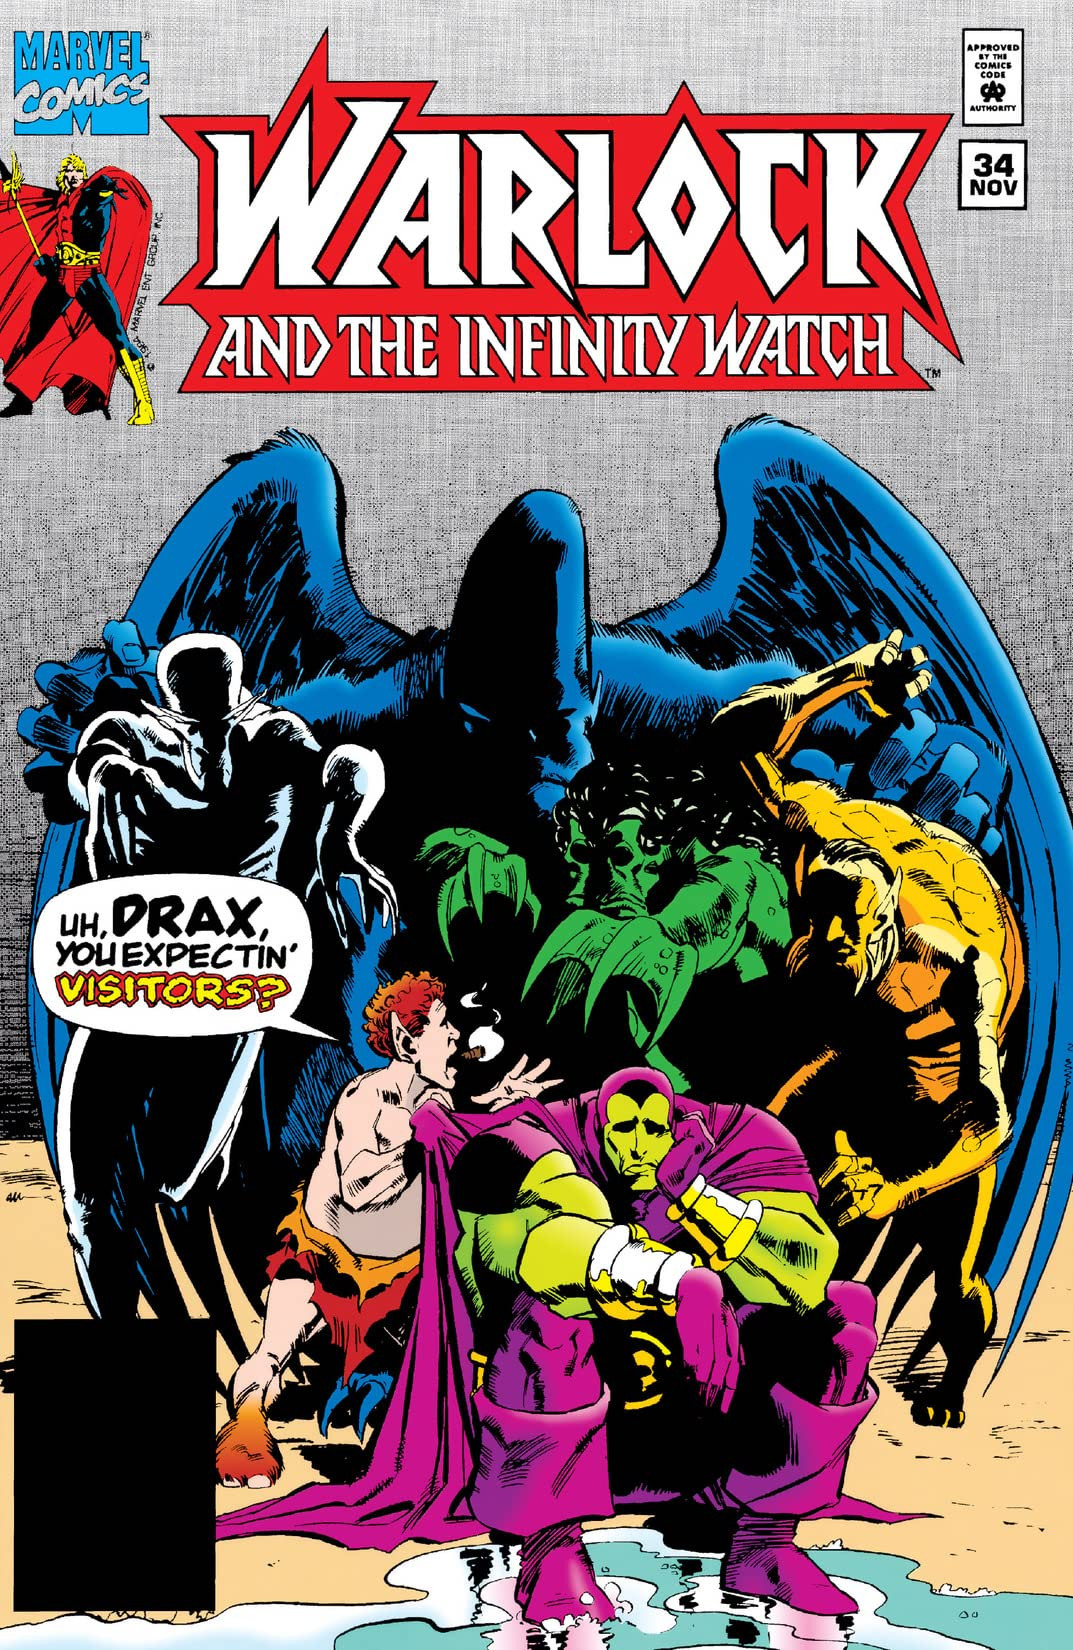 Warlock and the Infinity Watch Vol 1 34